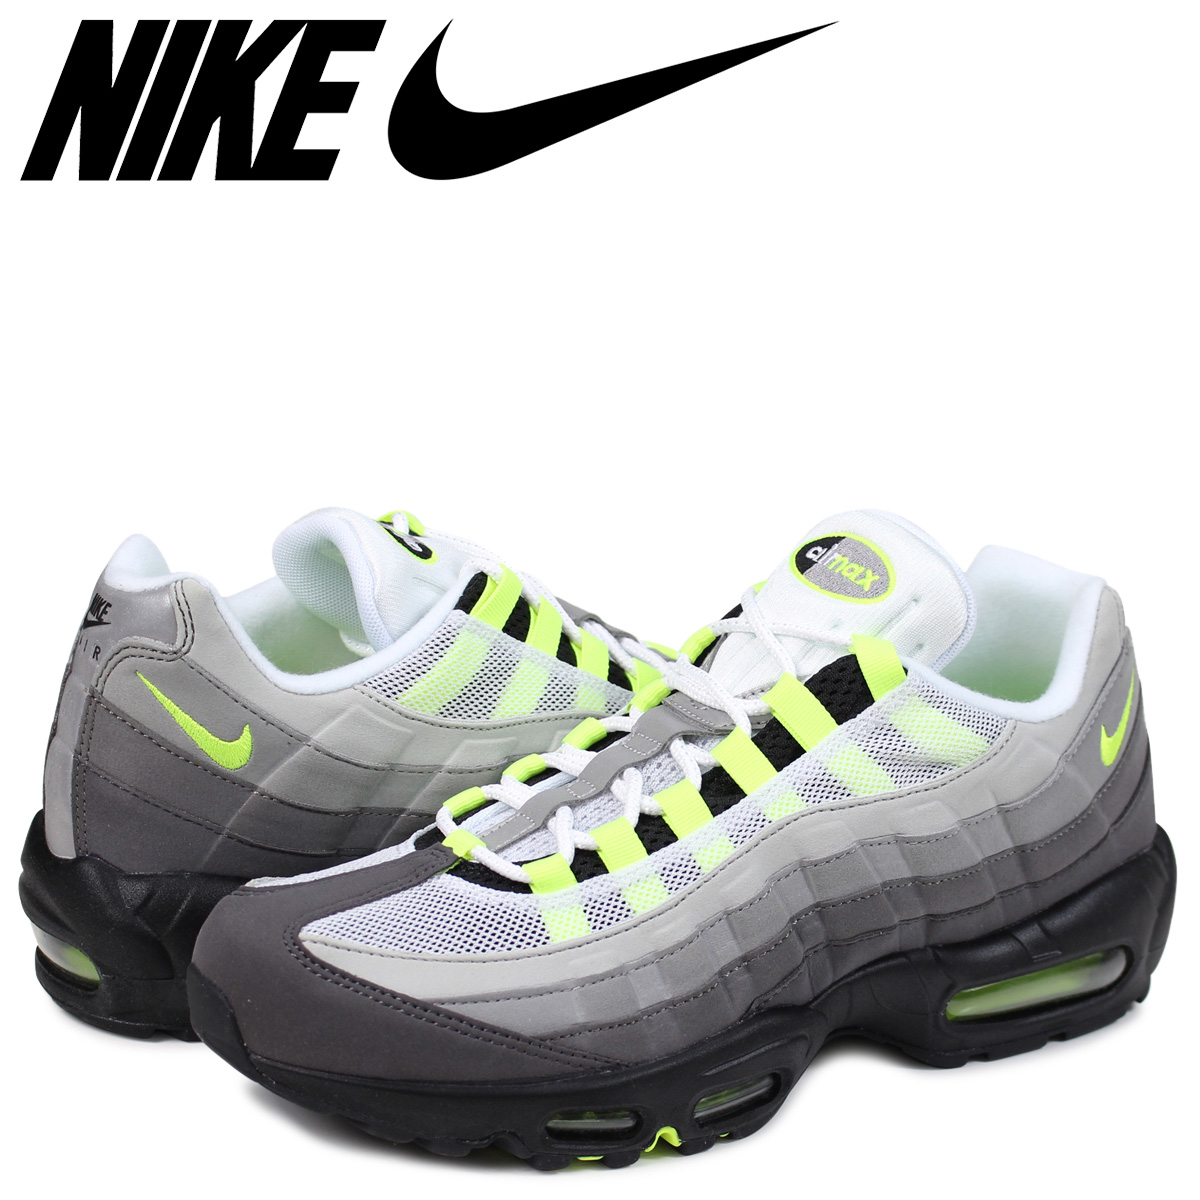 competitive price 38772 42ce9 ... nike air max 95 og kie ney amax 95 sneakers men 554970 071 neon yellow